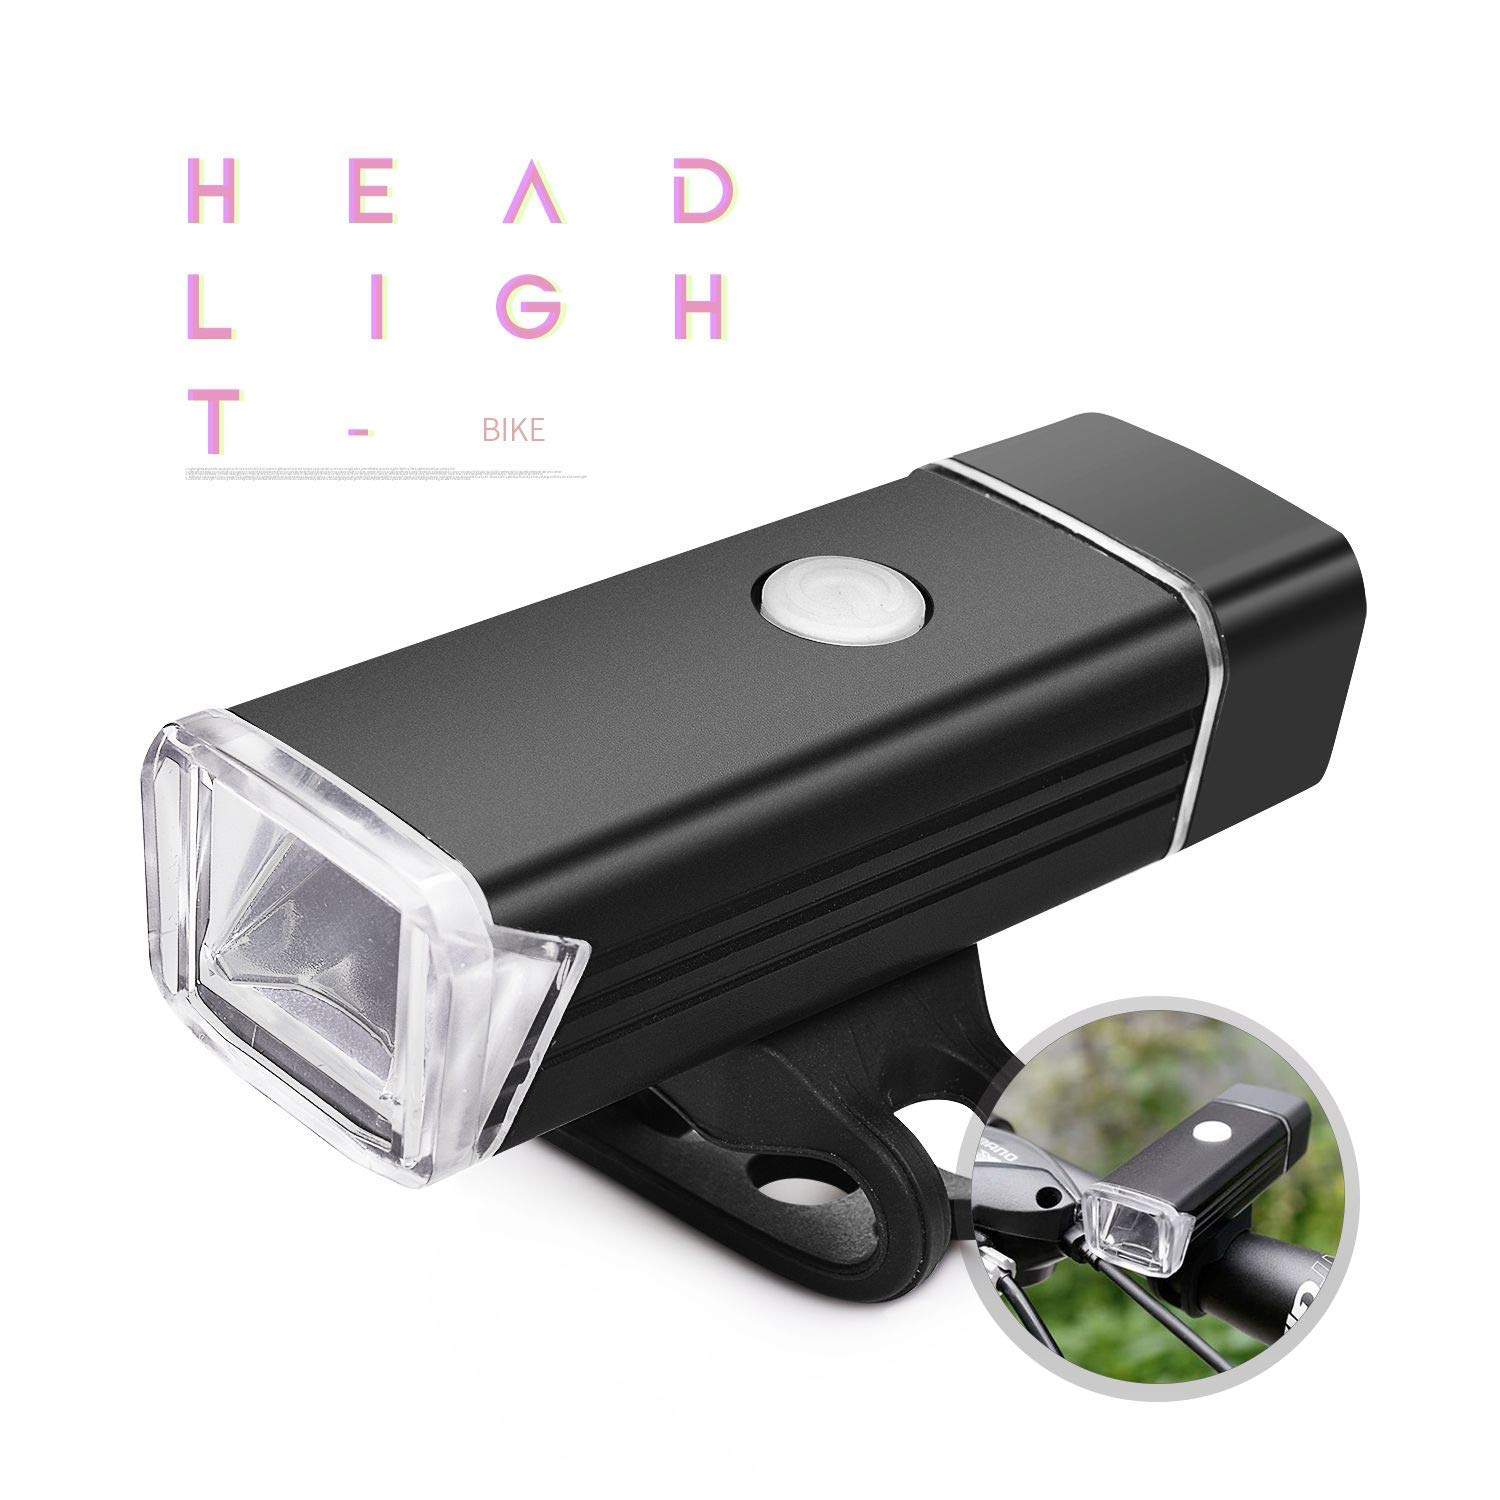 Bike Headlight USB Rechargeable Bicycle Light- Aluminum Alloy Waterproof 300 Lumen High Brightness Bicycle Light – Fits All Bicycles, Road, MTB, Easy Install Quick Release Bicycle Front Light